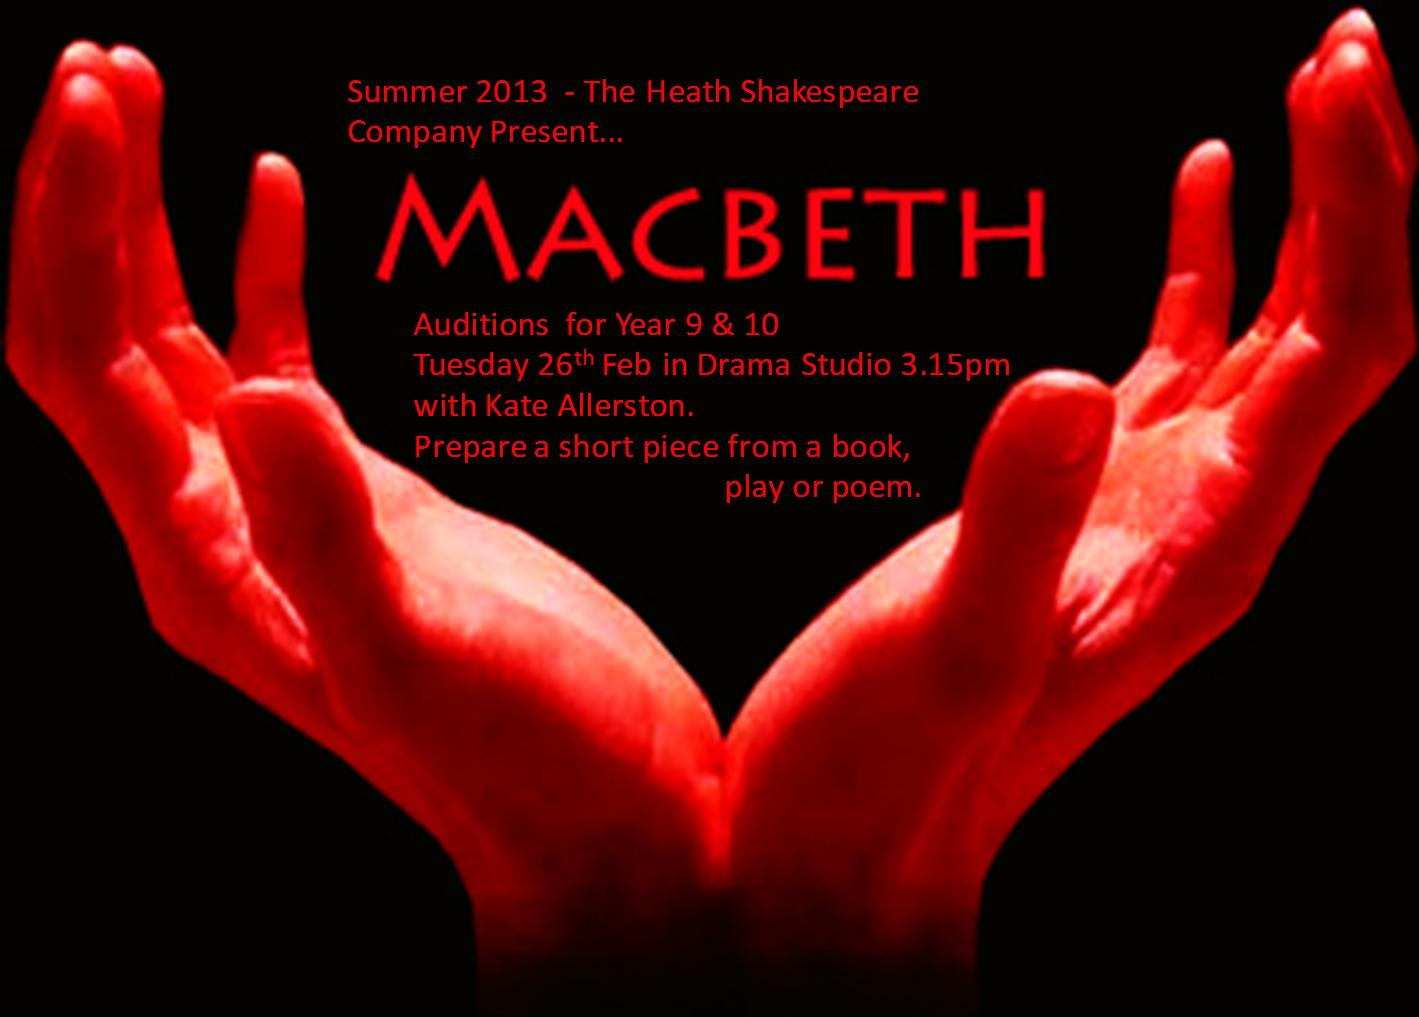 how power is used in macbeth Macbeth's ambition, which has brought him great success and reward when used justly, is proved the use and abuse of power is an important theme in ' macbeth ' we see the supernatural power of the witches , the political power of the monarchy and the physical power of the warrior.